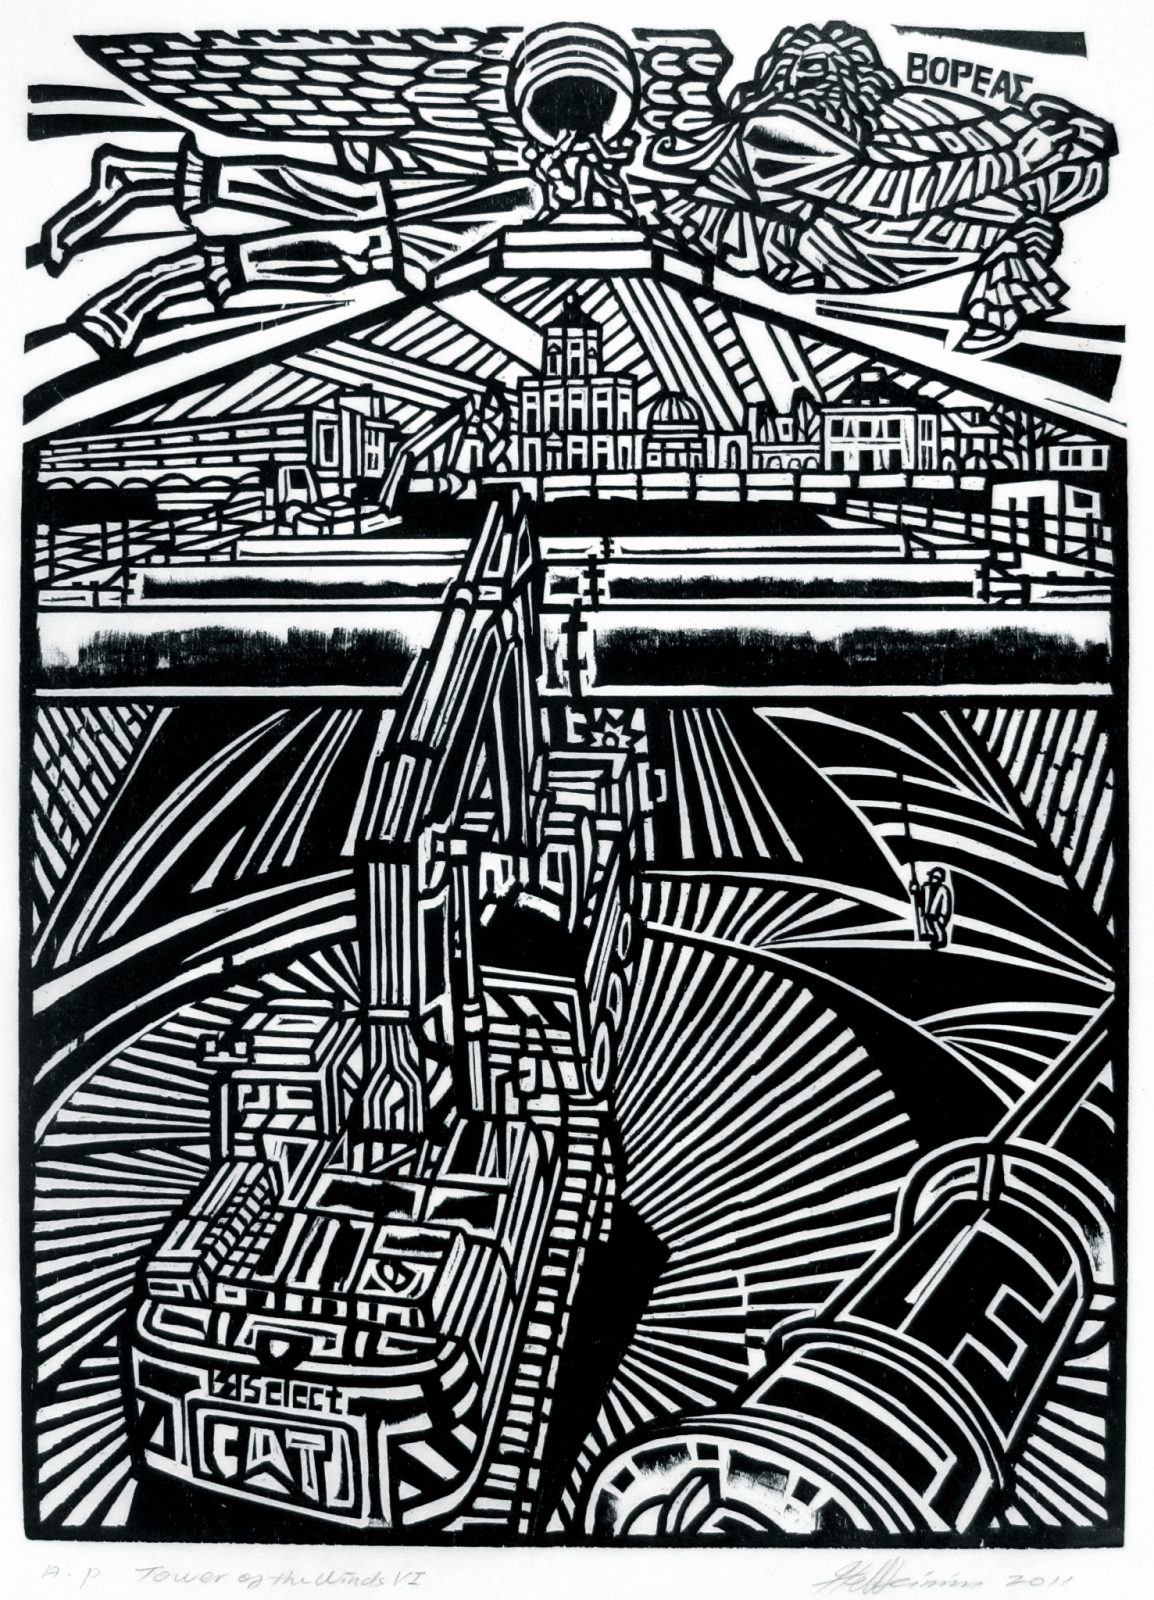 Tower of the winds VII, image size: 36x26cm, woodcut,2012, Edition:60